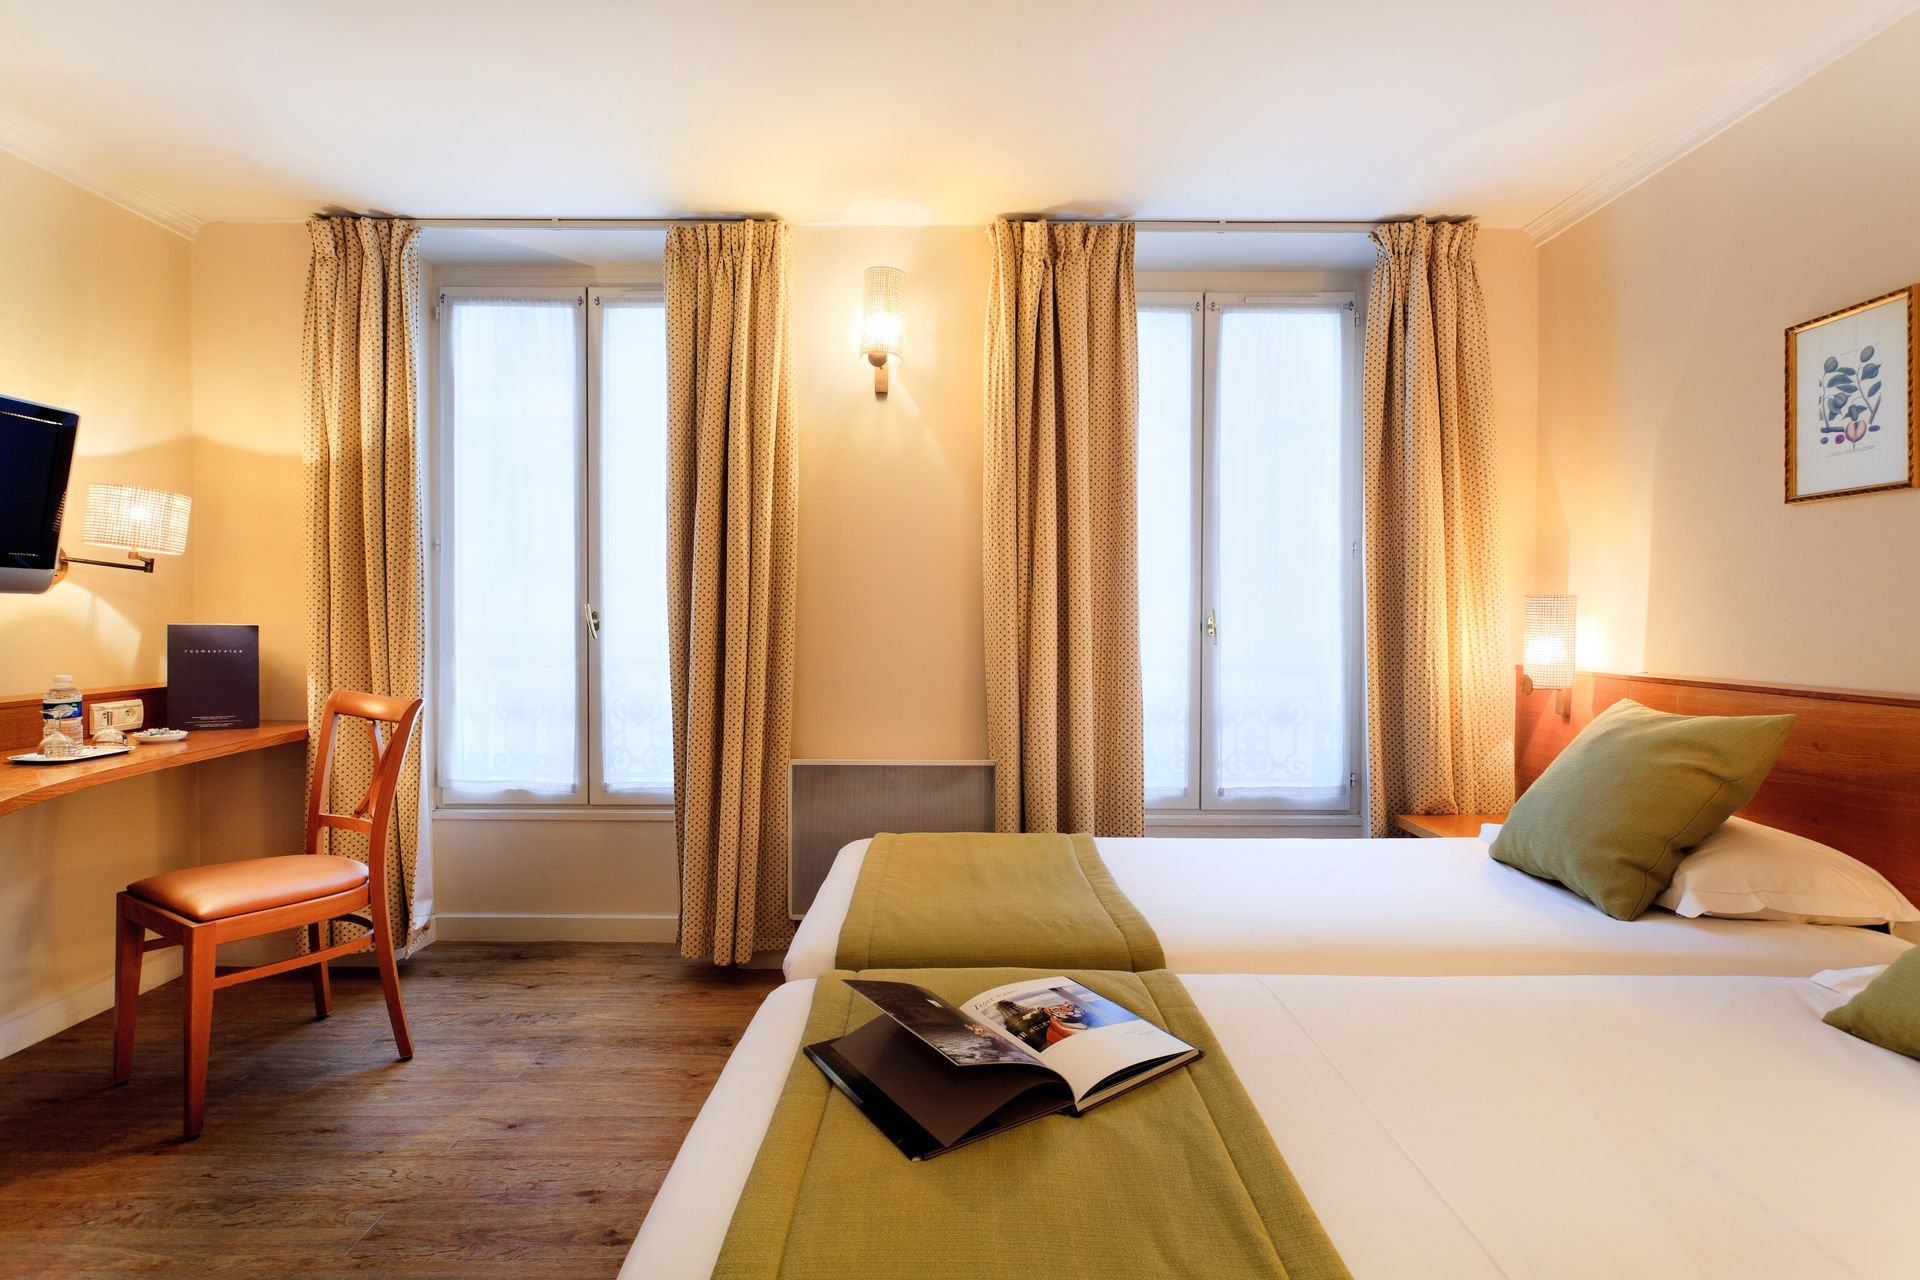 Superior Twin room del hotel Axel Opéra by Happyculture